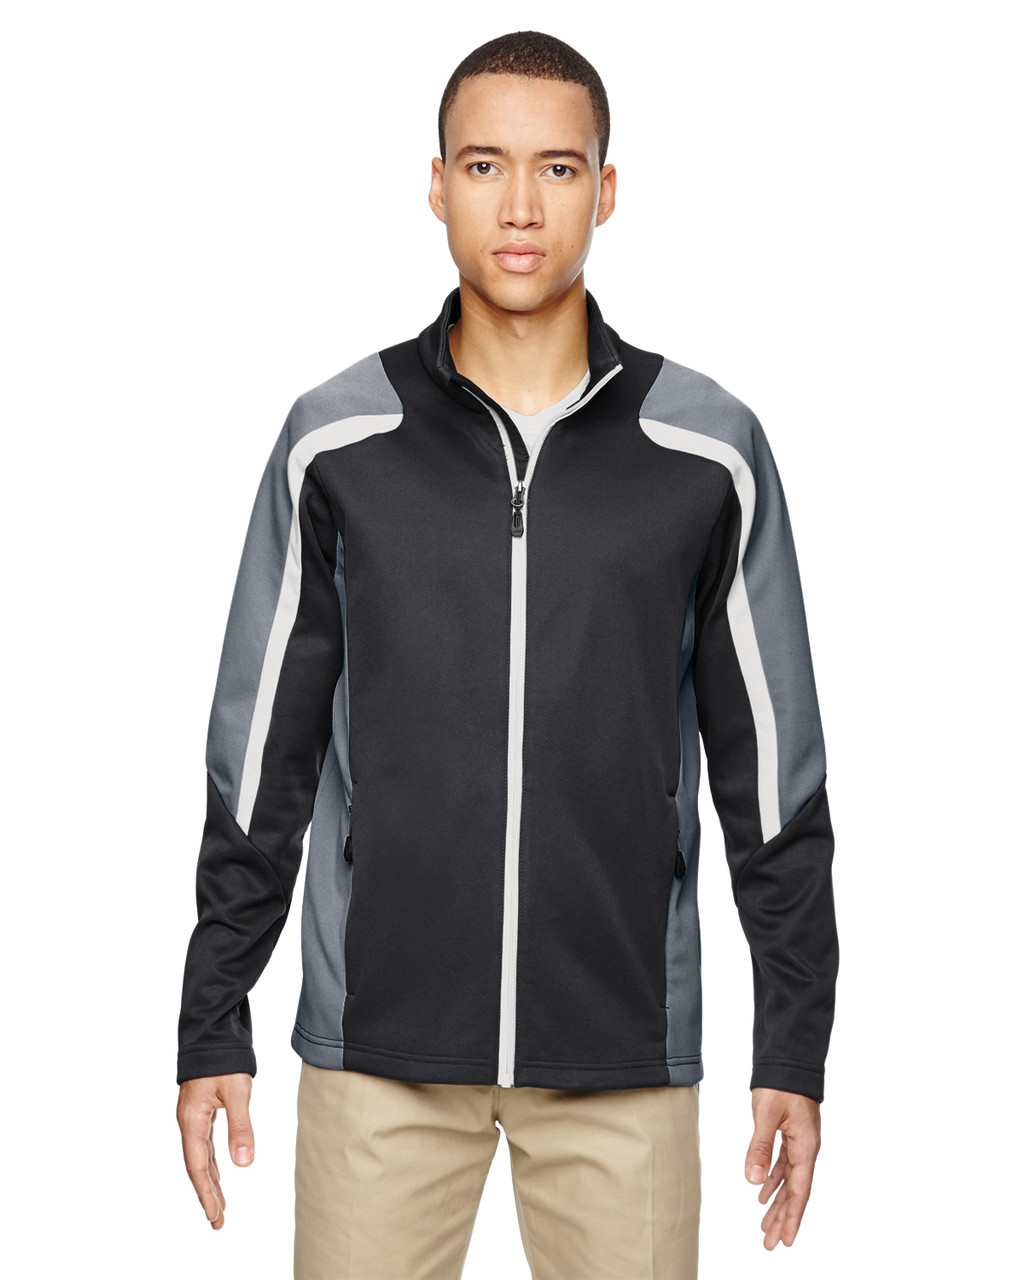 Carbon - 88201 North End Men's Strike Colorblock Fleece Jacket | Blankclothing.ca